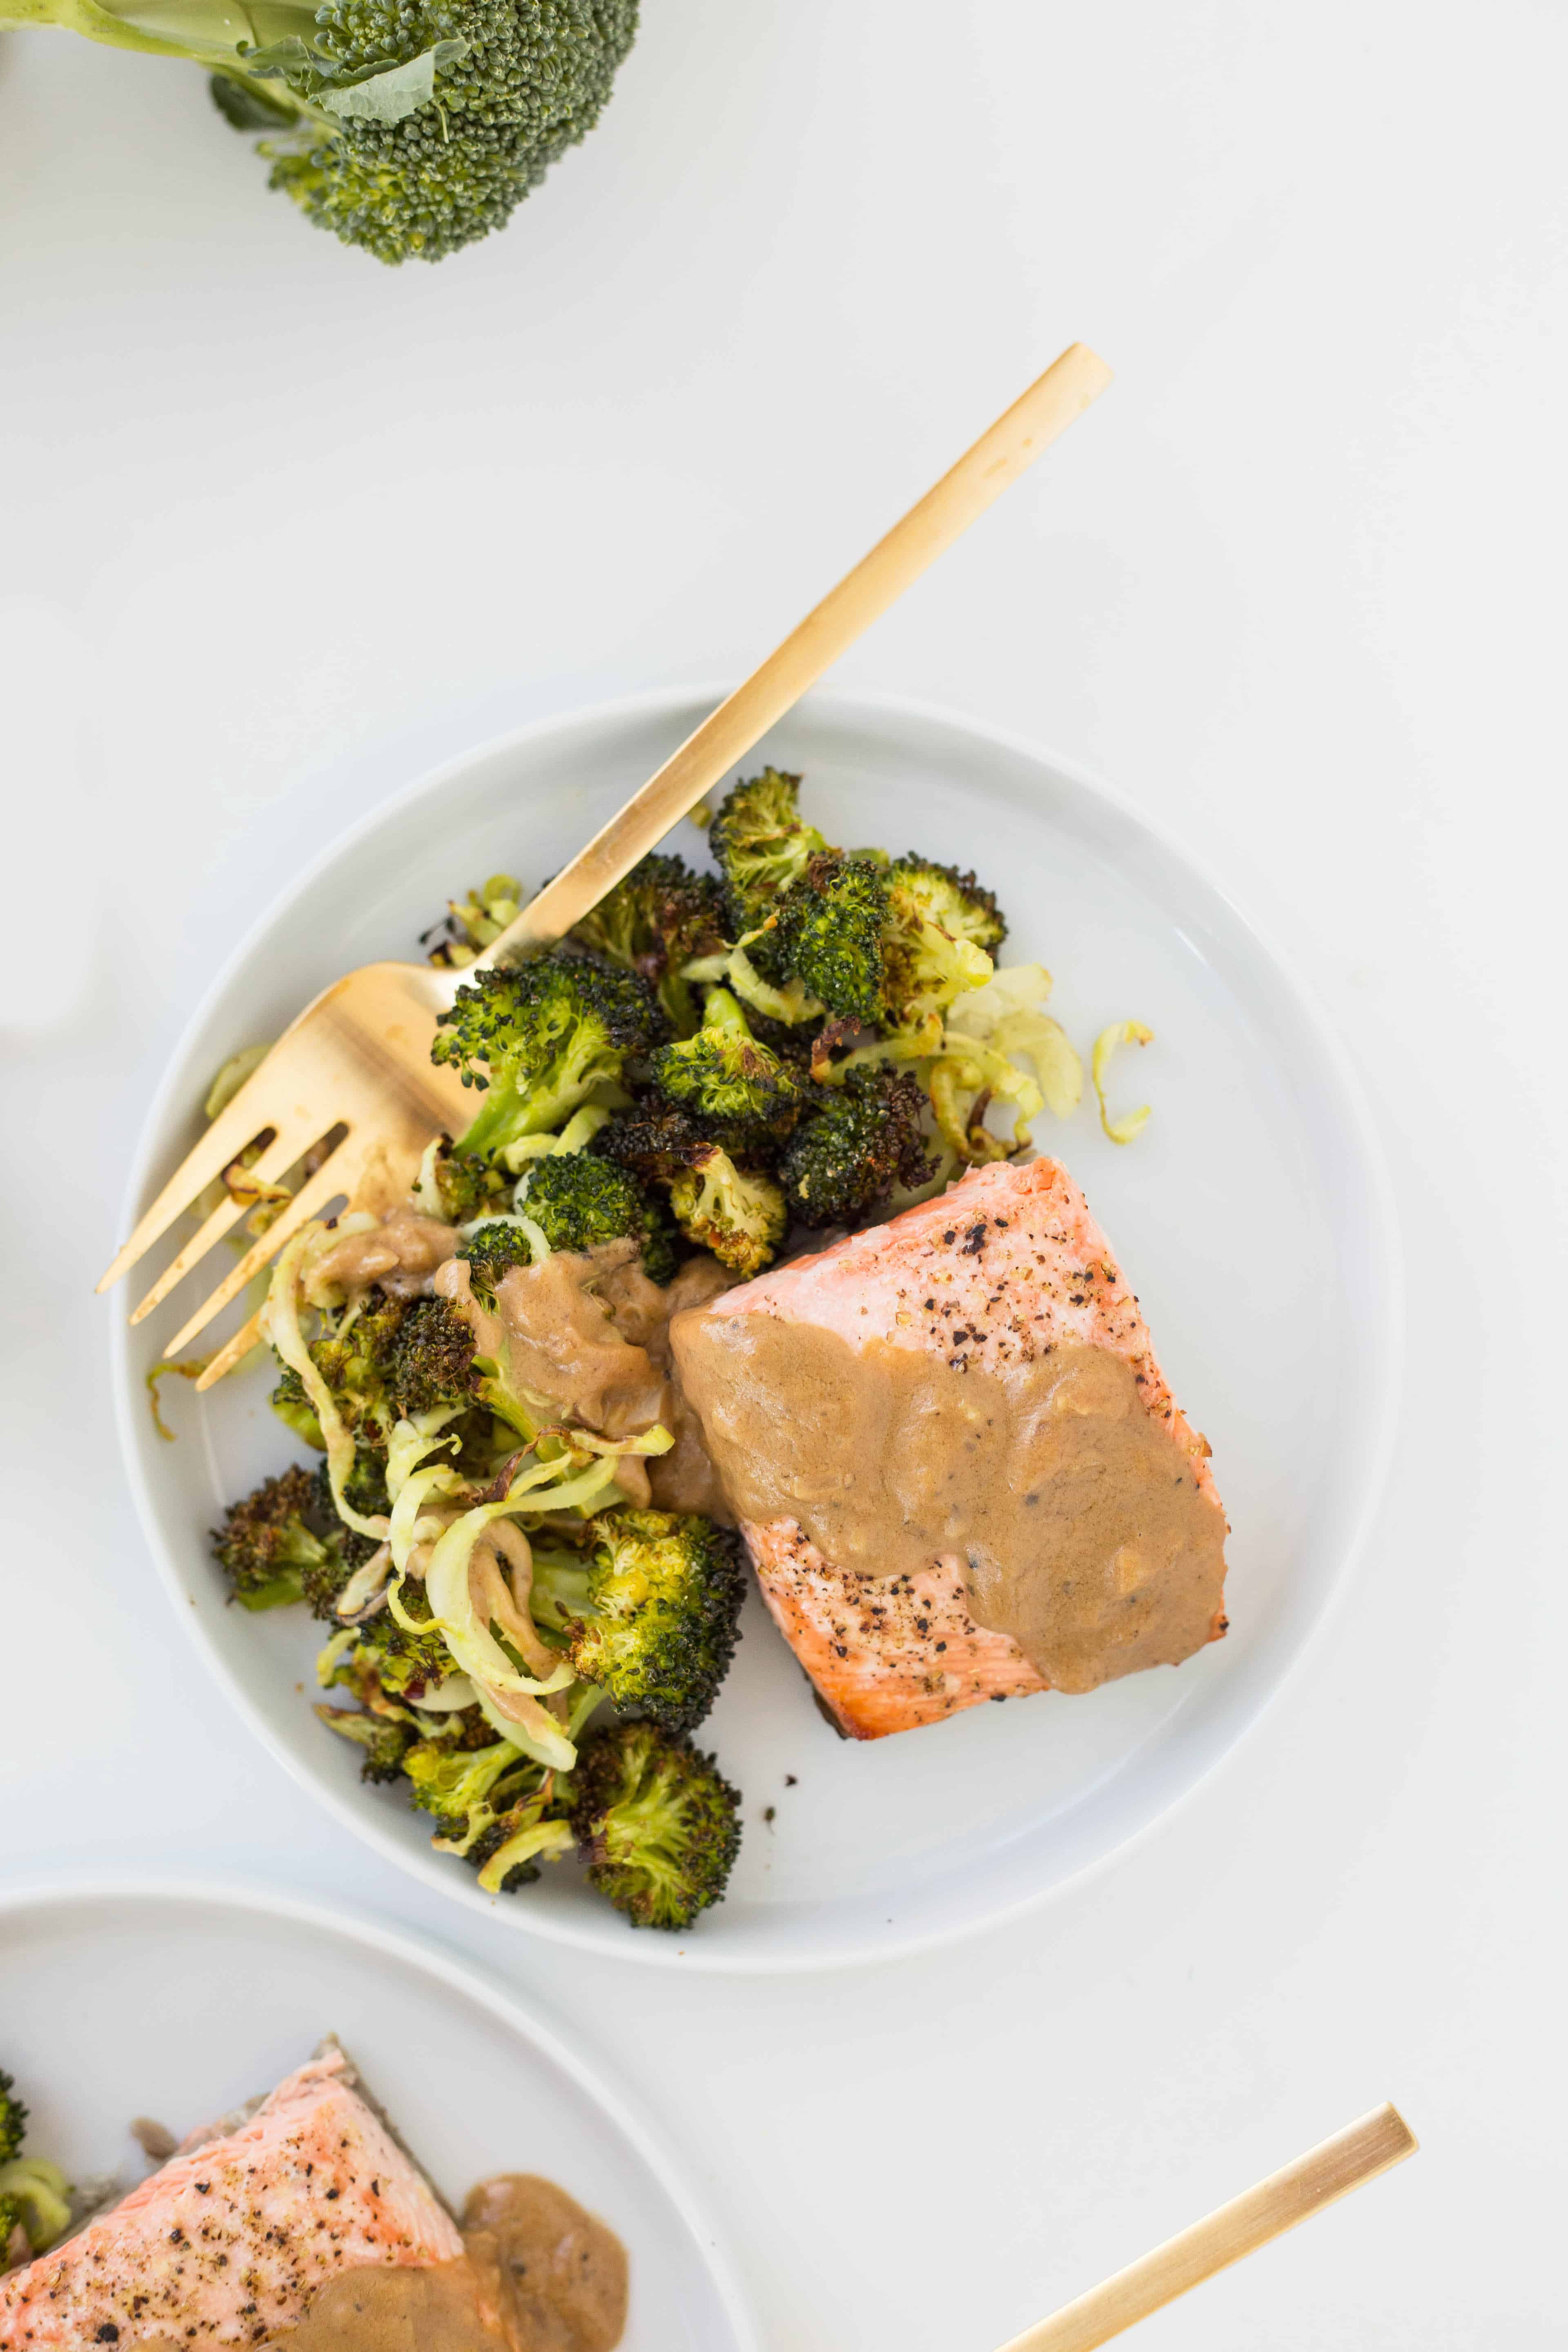 Baked Lemon Salmon with Spiralized Broccoli and Dijon Sauce